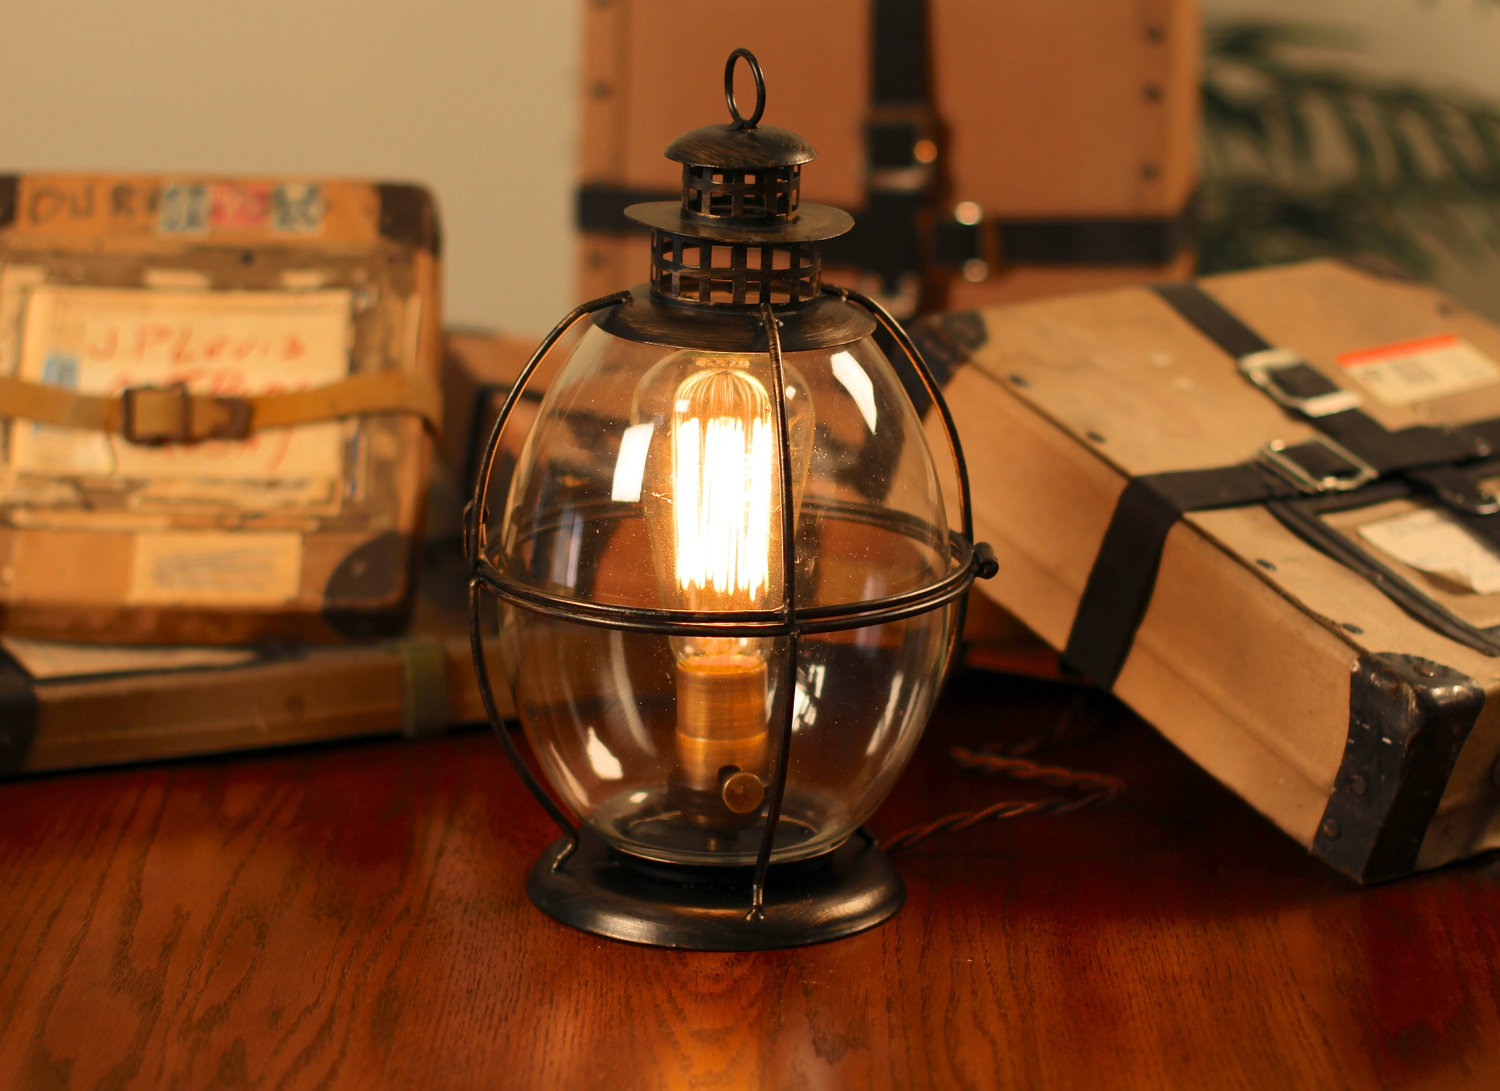 Illuminate Your Rooms With The Antique Shades From Rustic